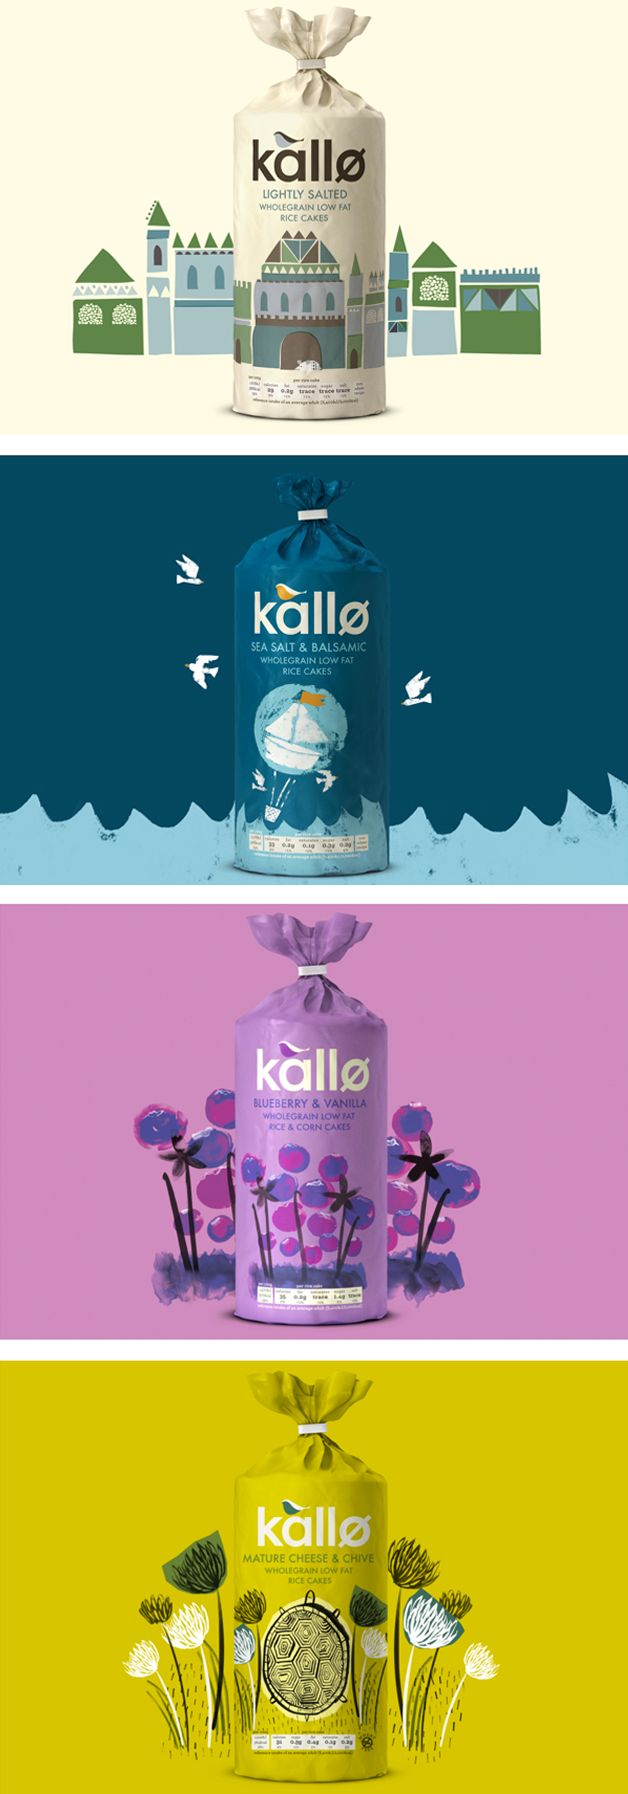 Kallo, food packaging designhttps://www.behance.net/gallery/Kallo/11427605?isa0=1#